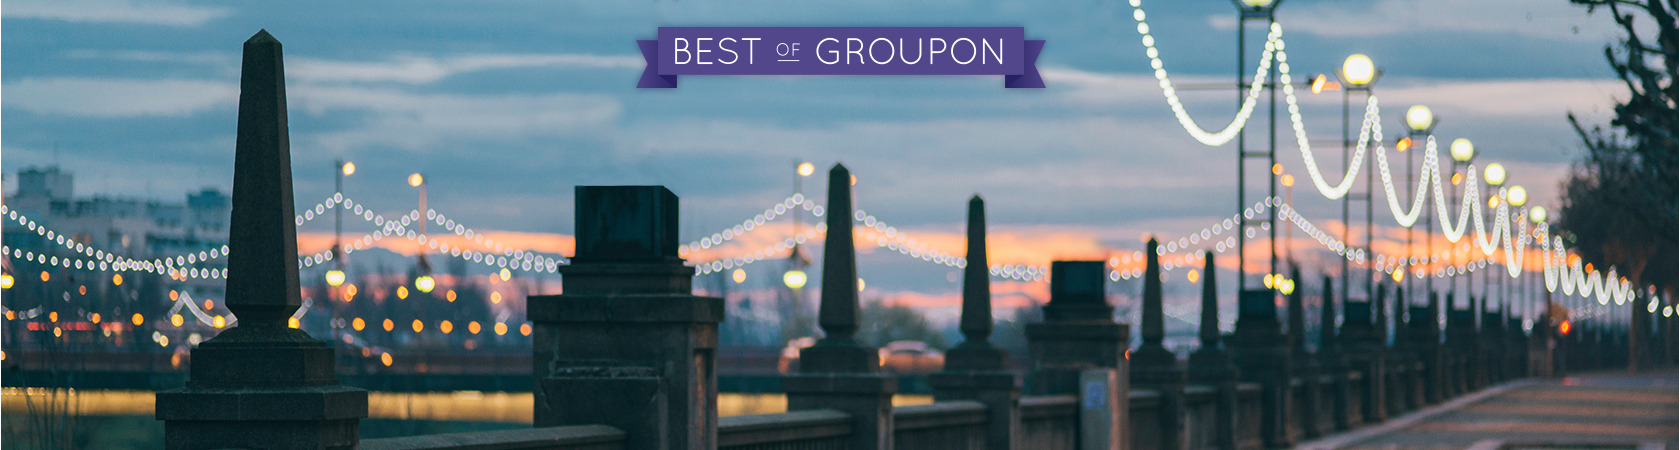 Best of groupon groupon - Chihuly garden and glass groupon ...